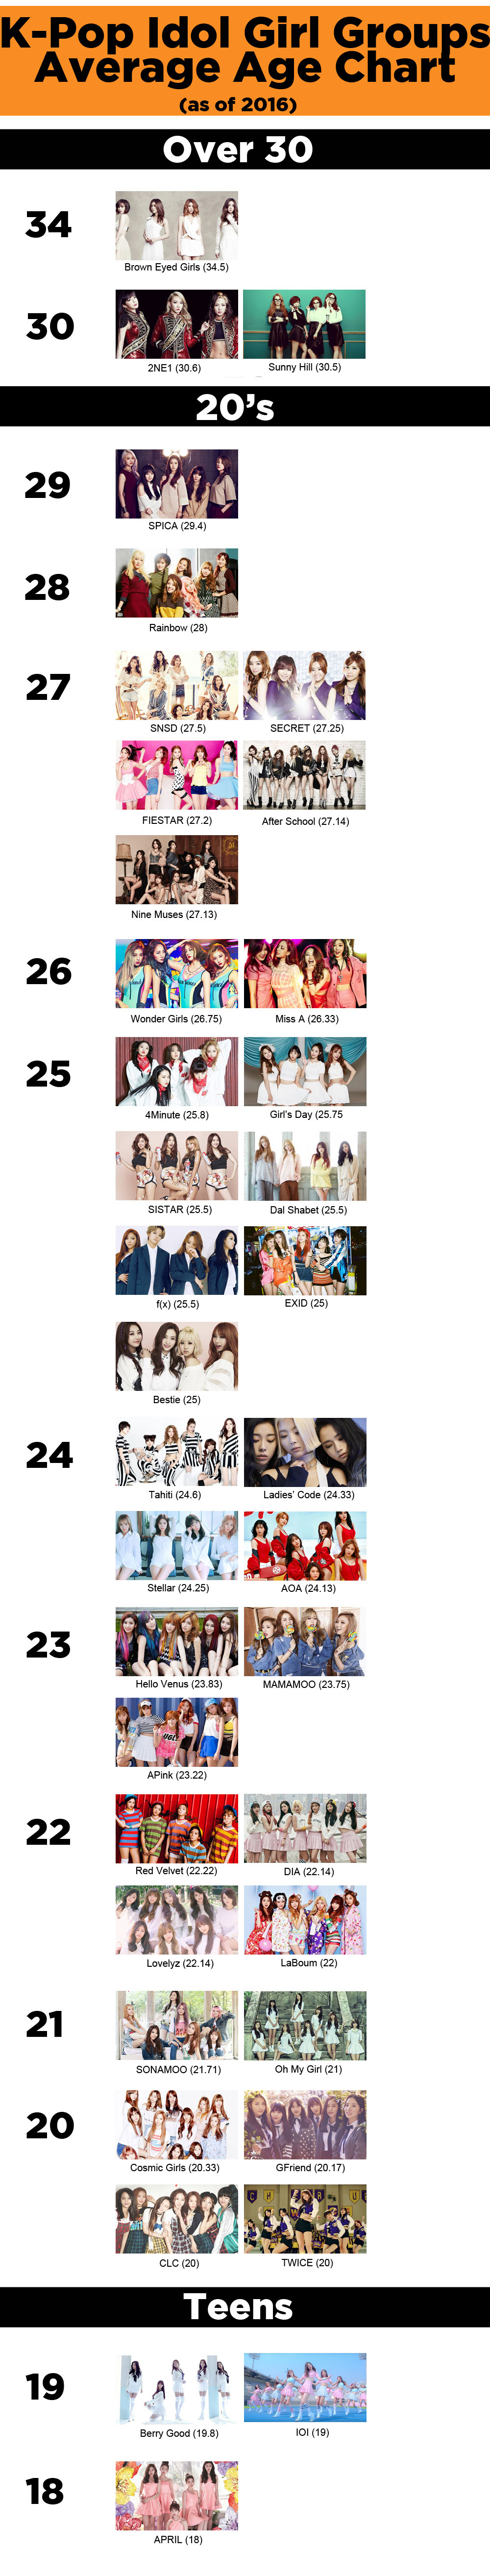 kpop, kpop idols, kpop idols age, kpop girl groups, kpop girl groups age, kpop girl groups average age, kpop girl group chart, kpop girl groups 2016